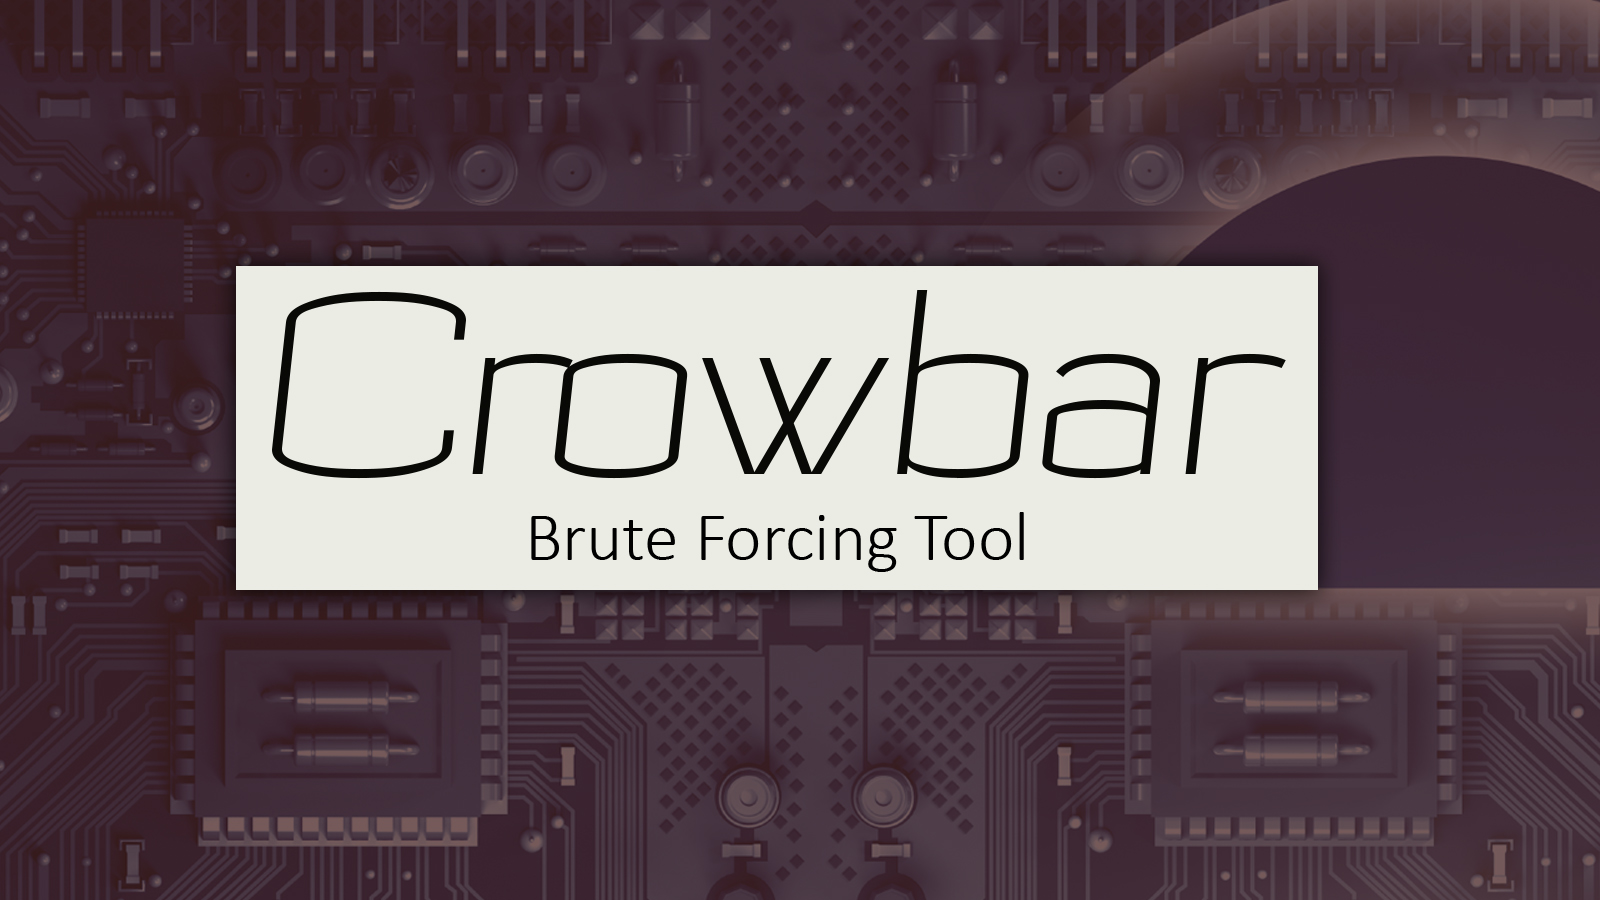 Crowbar - Brute Forcing Tool